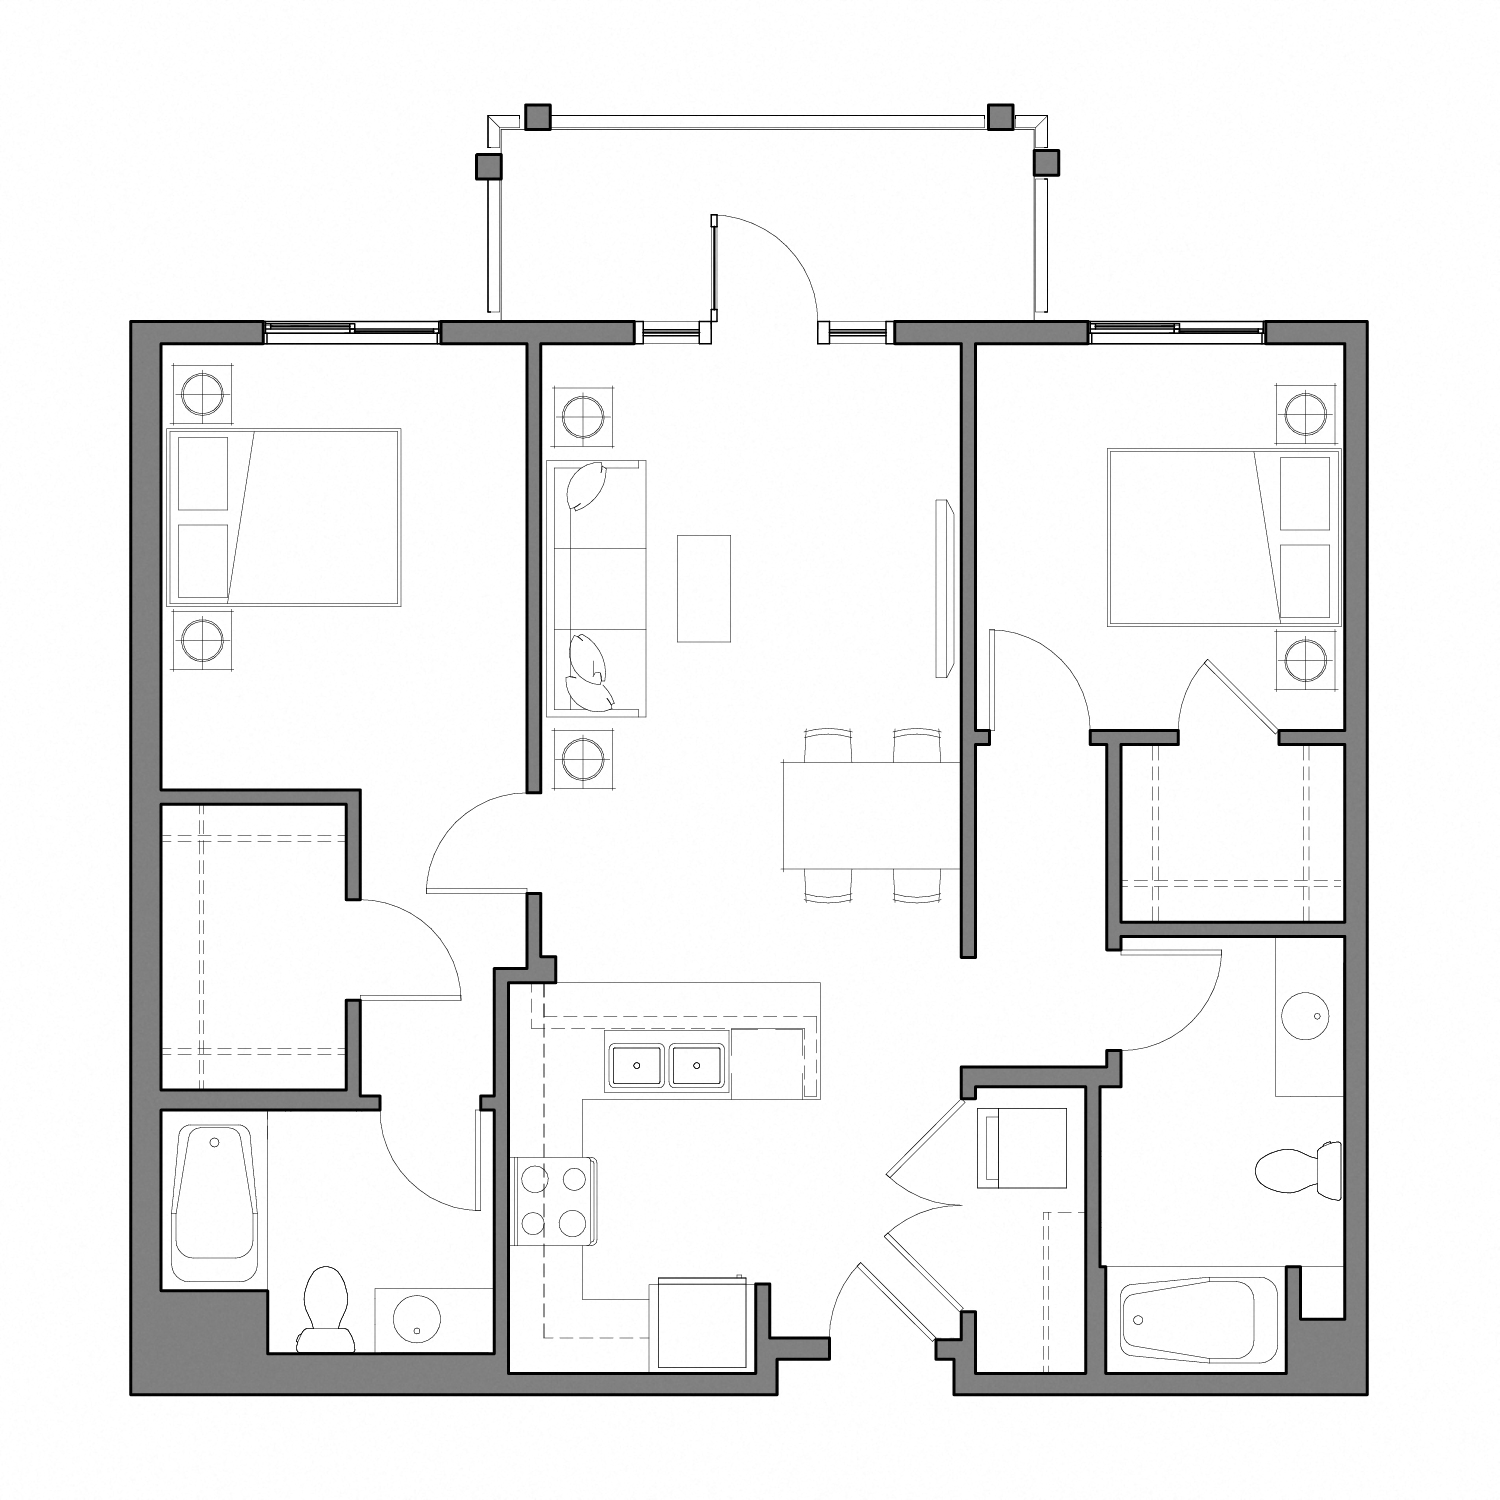 Floor plan diagram with two bedrooms, two bathrooms, an open kitchen dining and living space, and a patio